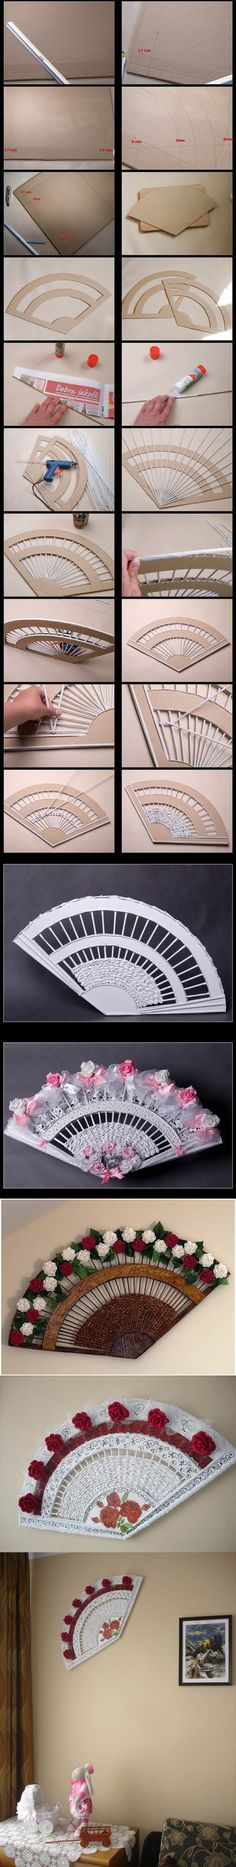 DIY Decorative Fan from Old Newspaper and Cardboard | iCreativeIdeas.com Follow Us on Facebook --> https://www.facebook.com/icreativeideas